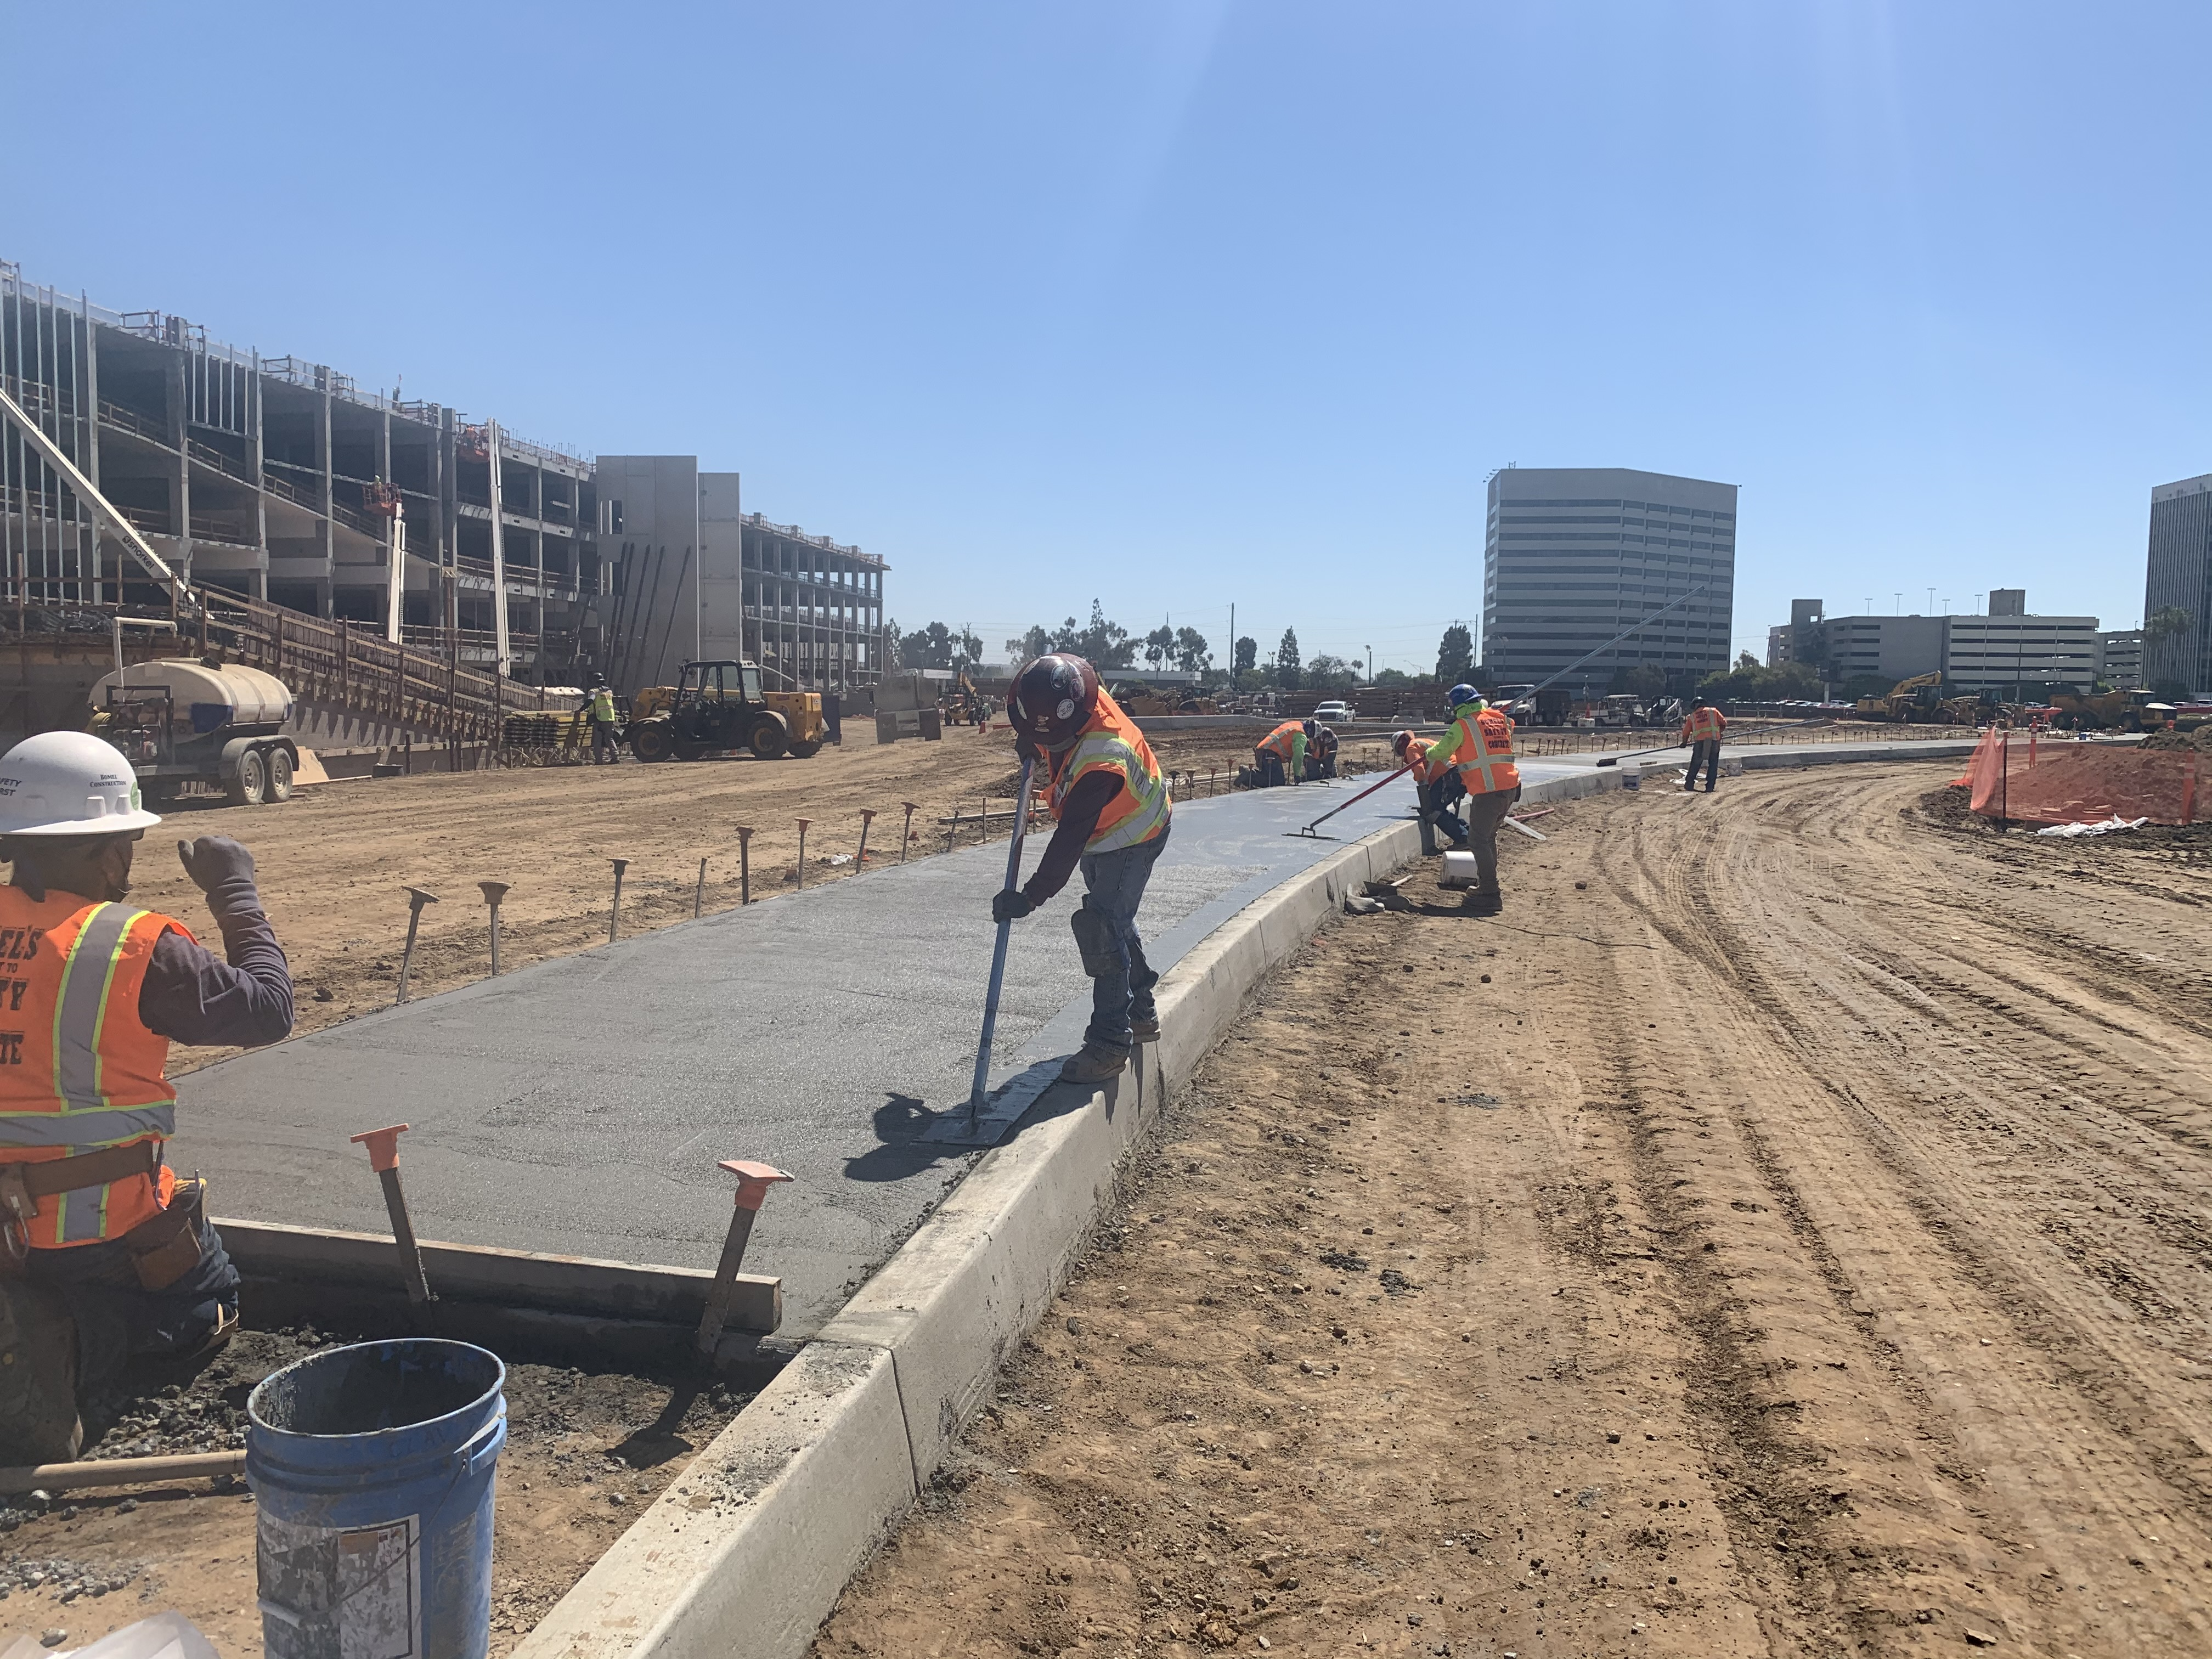 Workers smoothing concrete at the Consolidated Rent-A-Car facility.